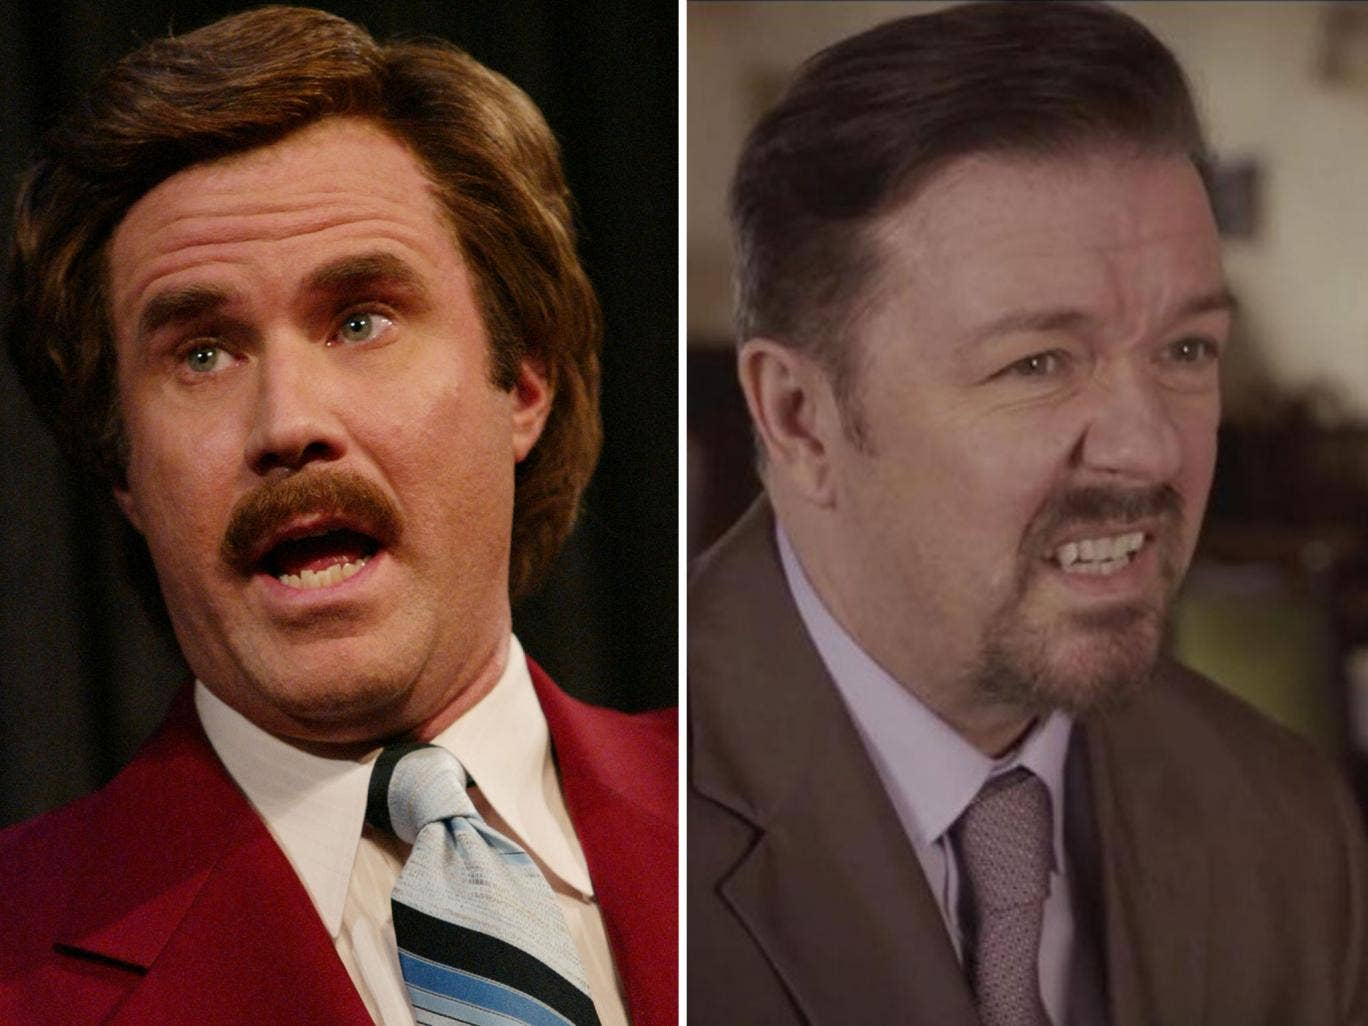 Will Ferrell will return as Ron Burgundy (left) and Ricky Gervais as David Brent (right) for tonight's Comic Relief